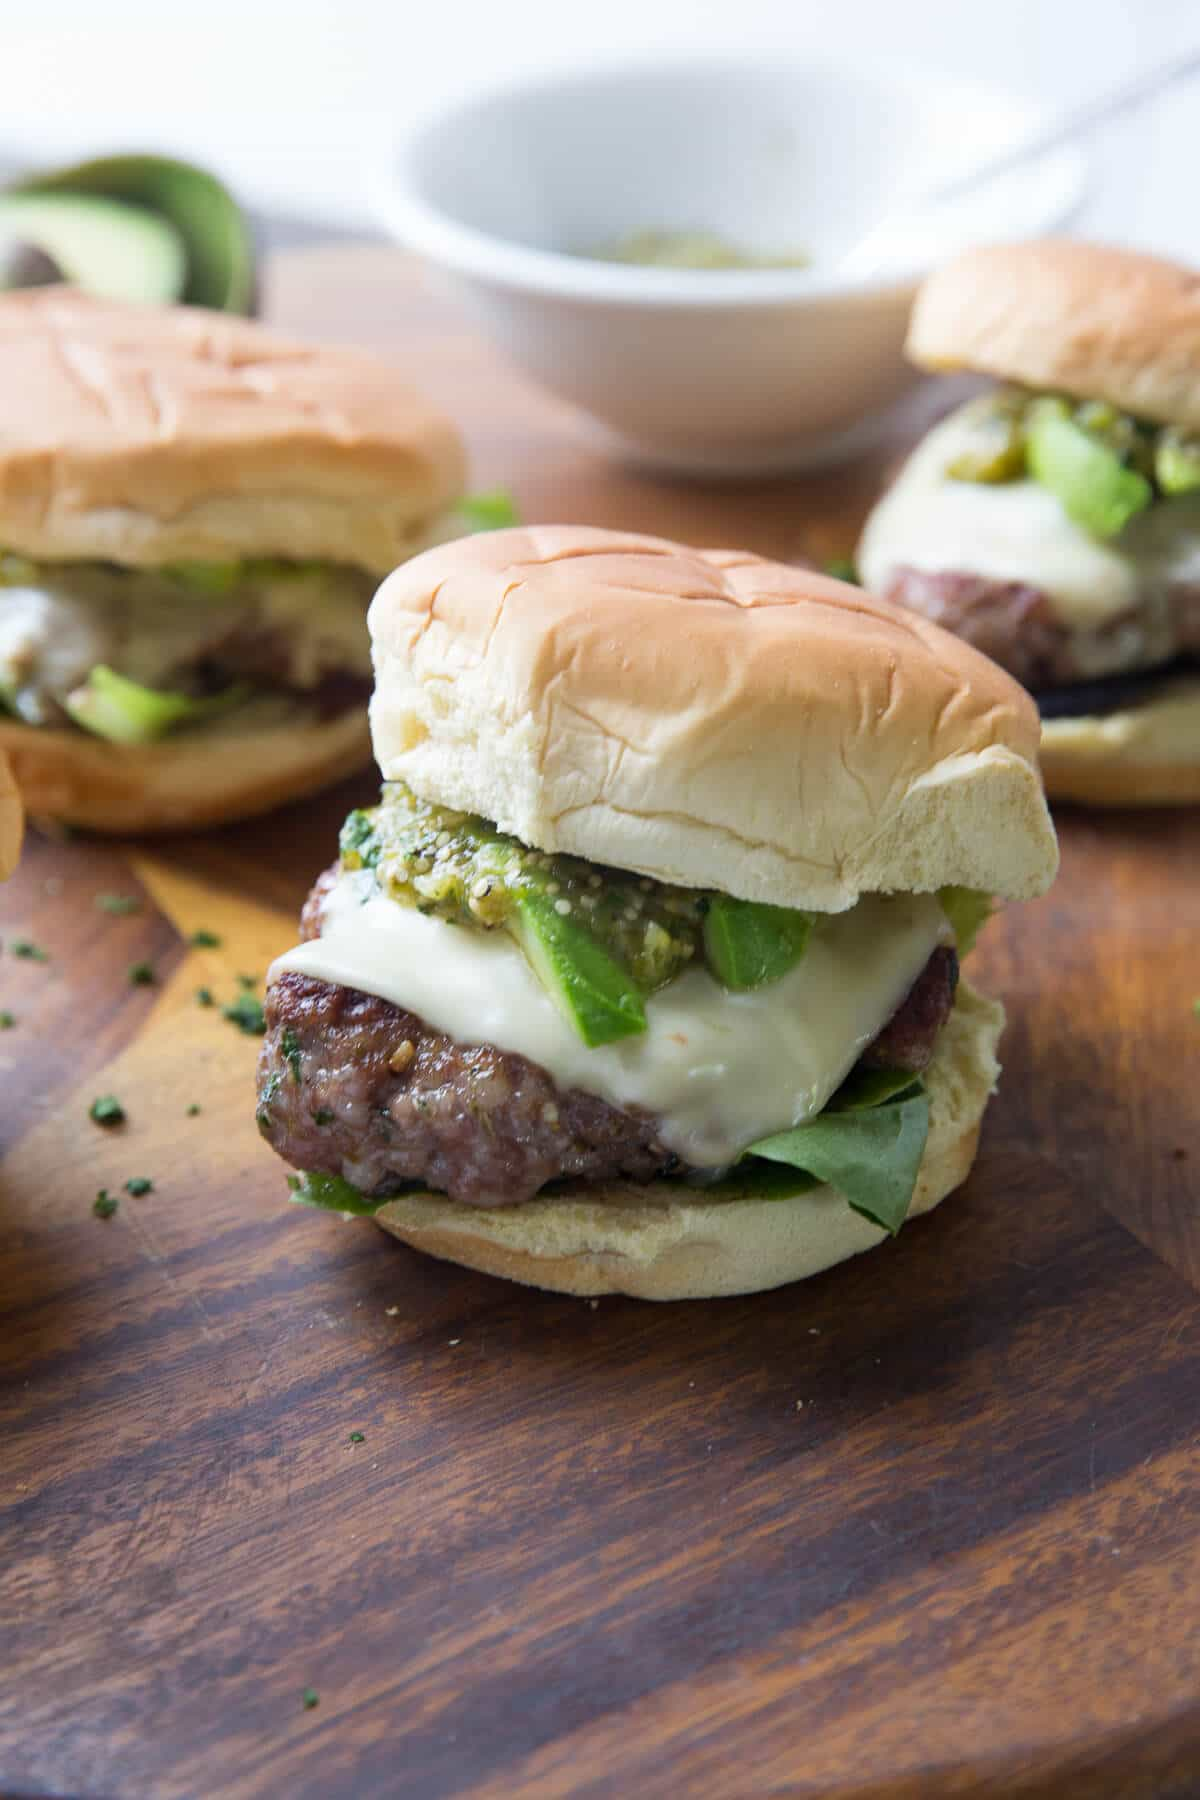 This pork burger is full of pie! The chile verde topping is outrageously good!